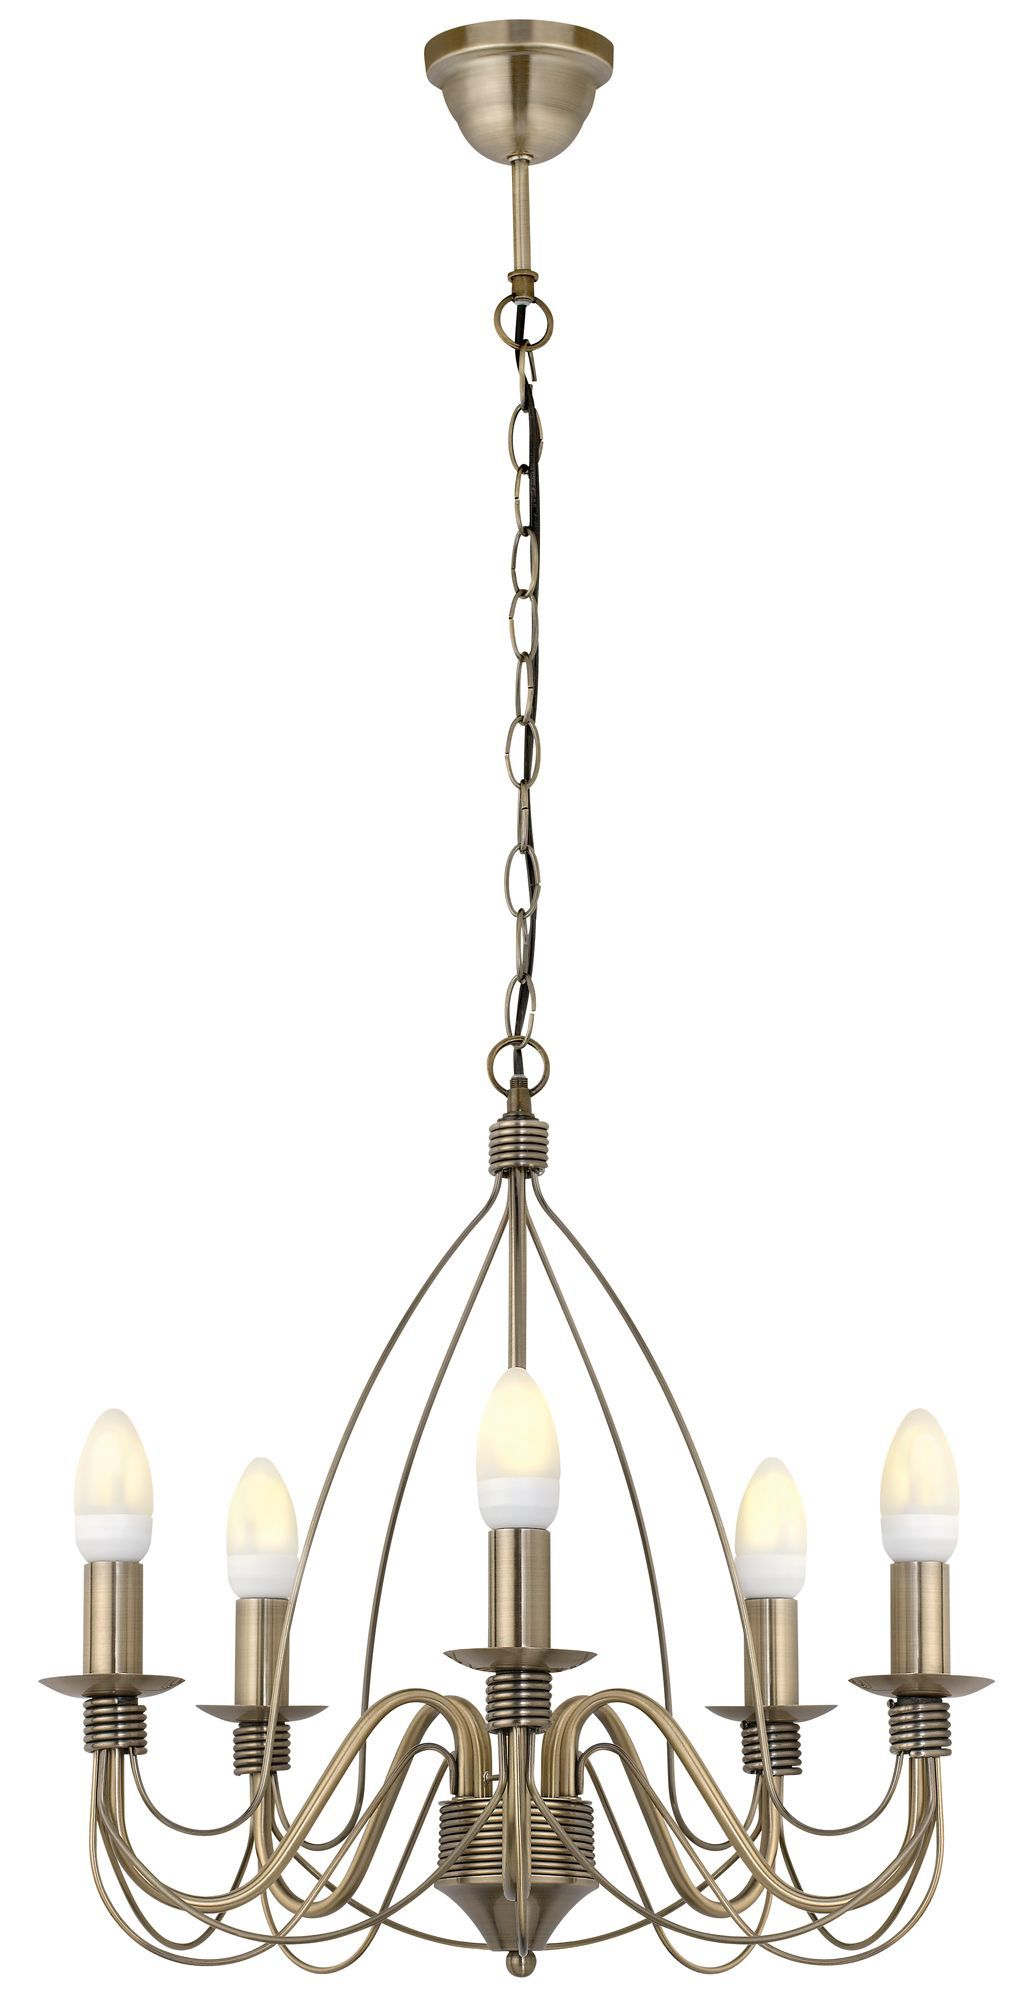 Vas Birdcage 5 Lamp Pendant Ceiling Light